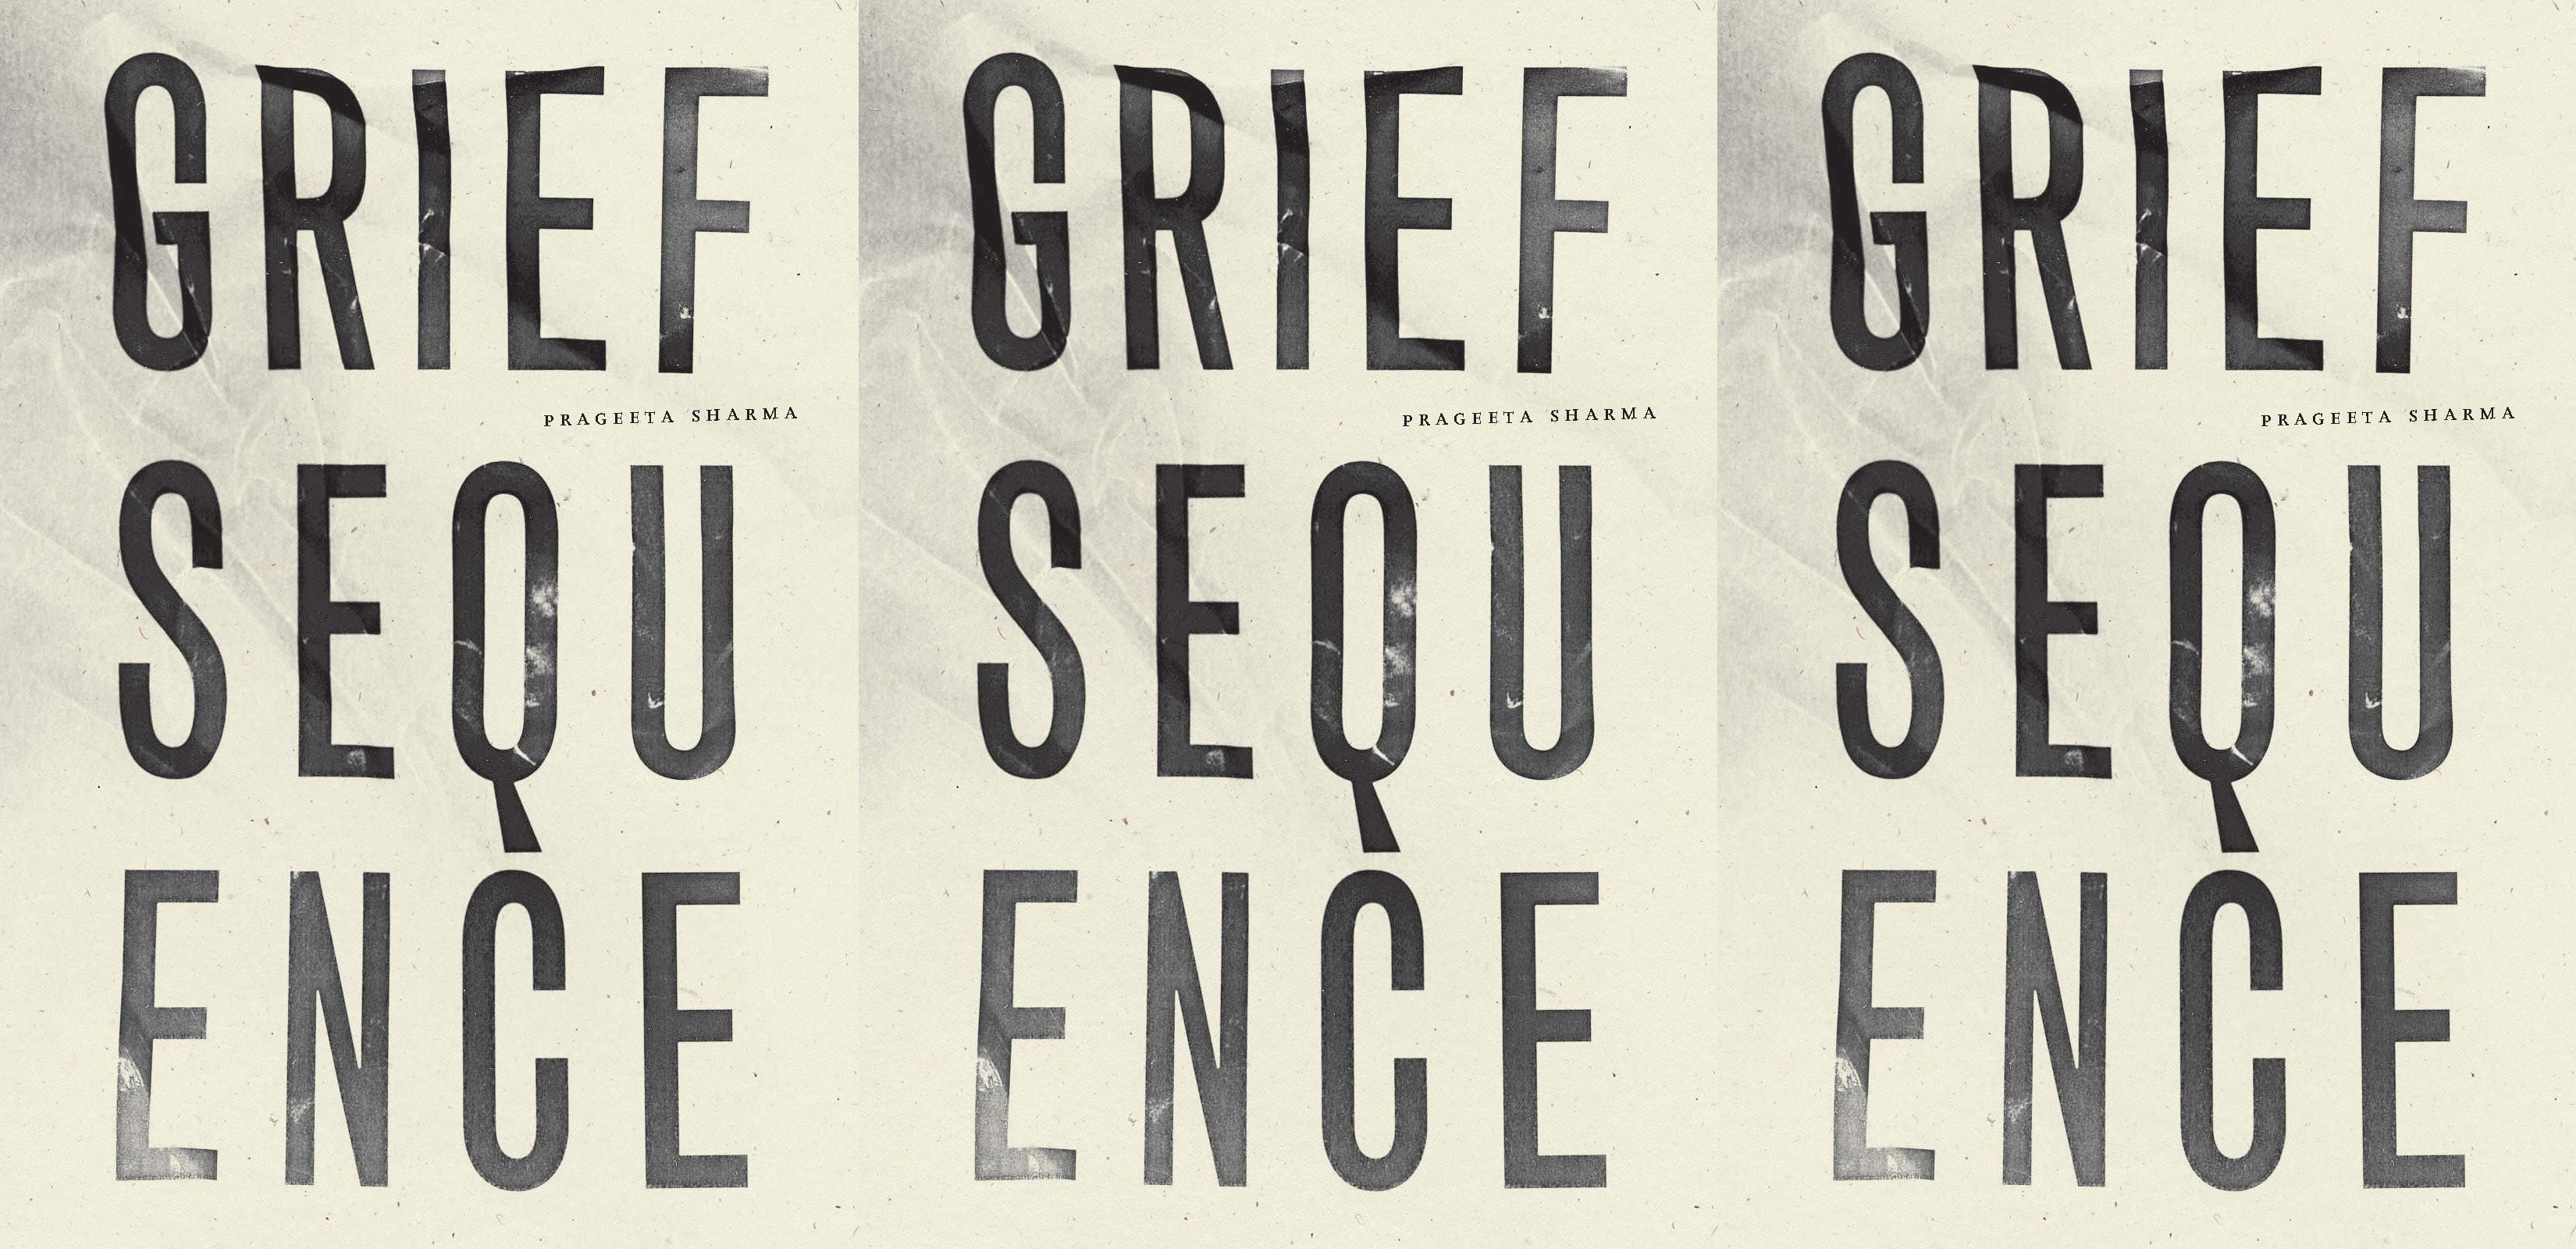 upcoming poetry collections, grief sequence by prageeta sharma, books